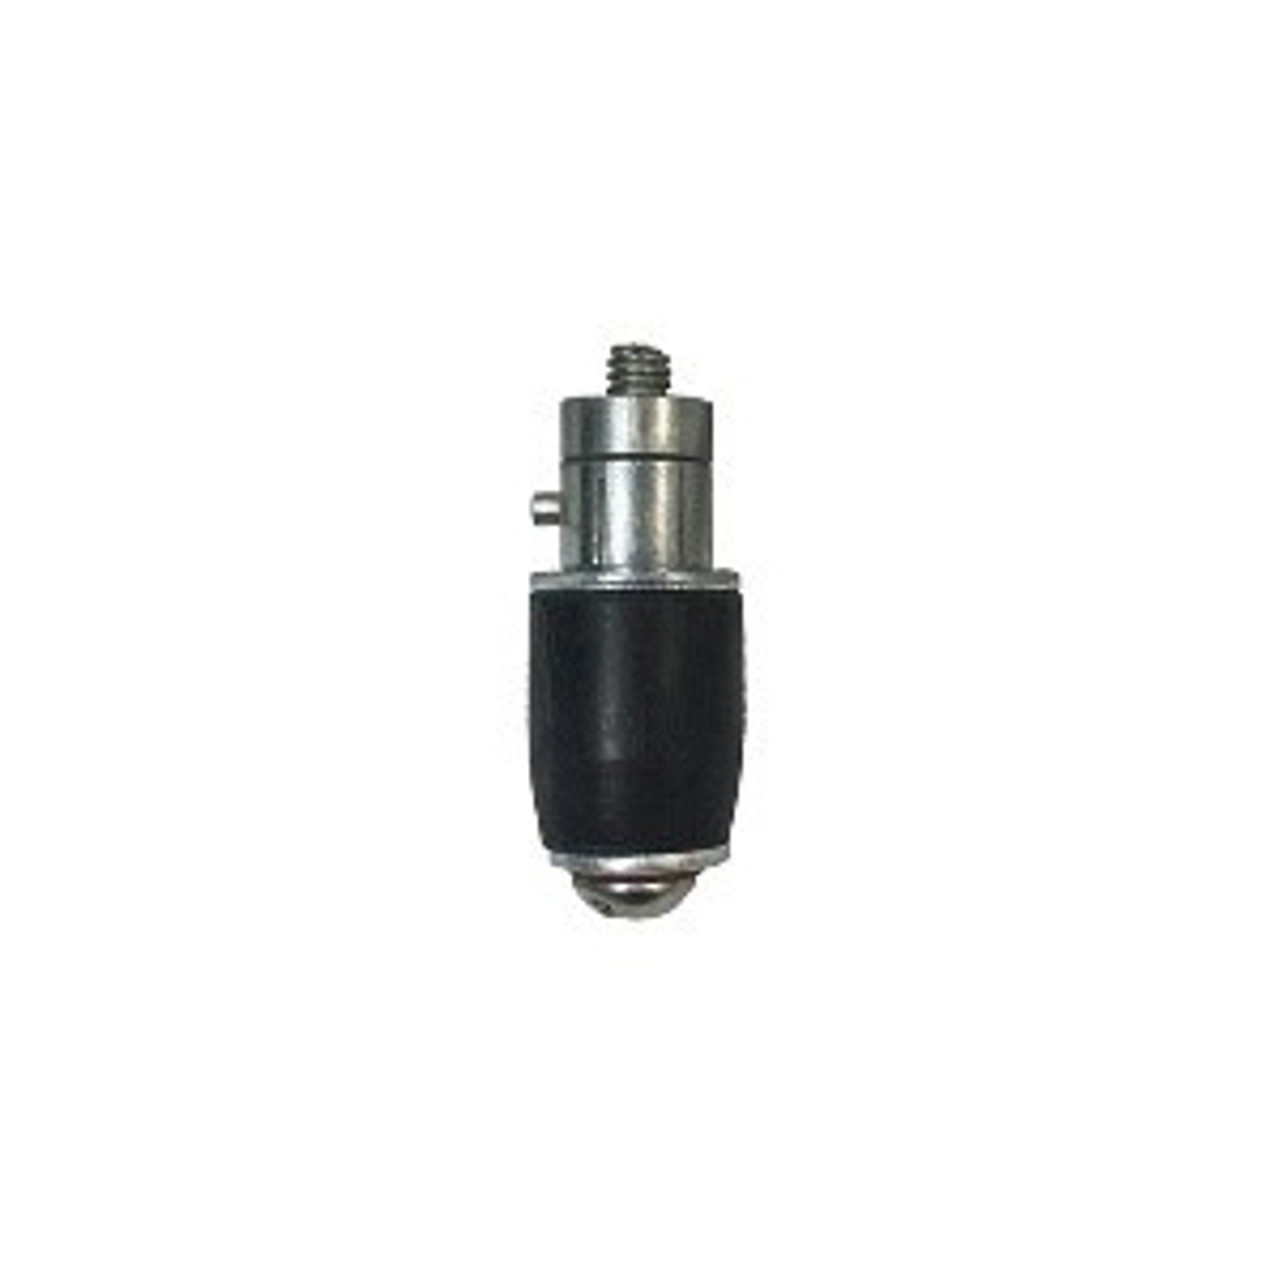 """Speecially designed to temporarily seal and stop off metallic or PE pipe remotely for fitting renewal or service line maintenance. Reusable, rugged, and lightweight made from Nitrile rubber and plated steel available in 1/2""""-2"""" sizes.  Also used as a tamper resistant night cap to prevent unwanted material such as dirt, water, debris, animals, etc. from entering open ended pipes. This is critically important when protecting your expensive pipeline projects. These pipe plugs are composed of two steel washers, which are compressed together by tightening the central bolt using the Special Expansion Plug Wrench."""